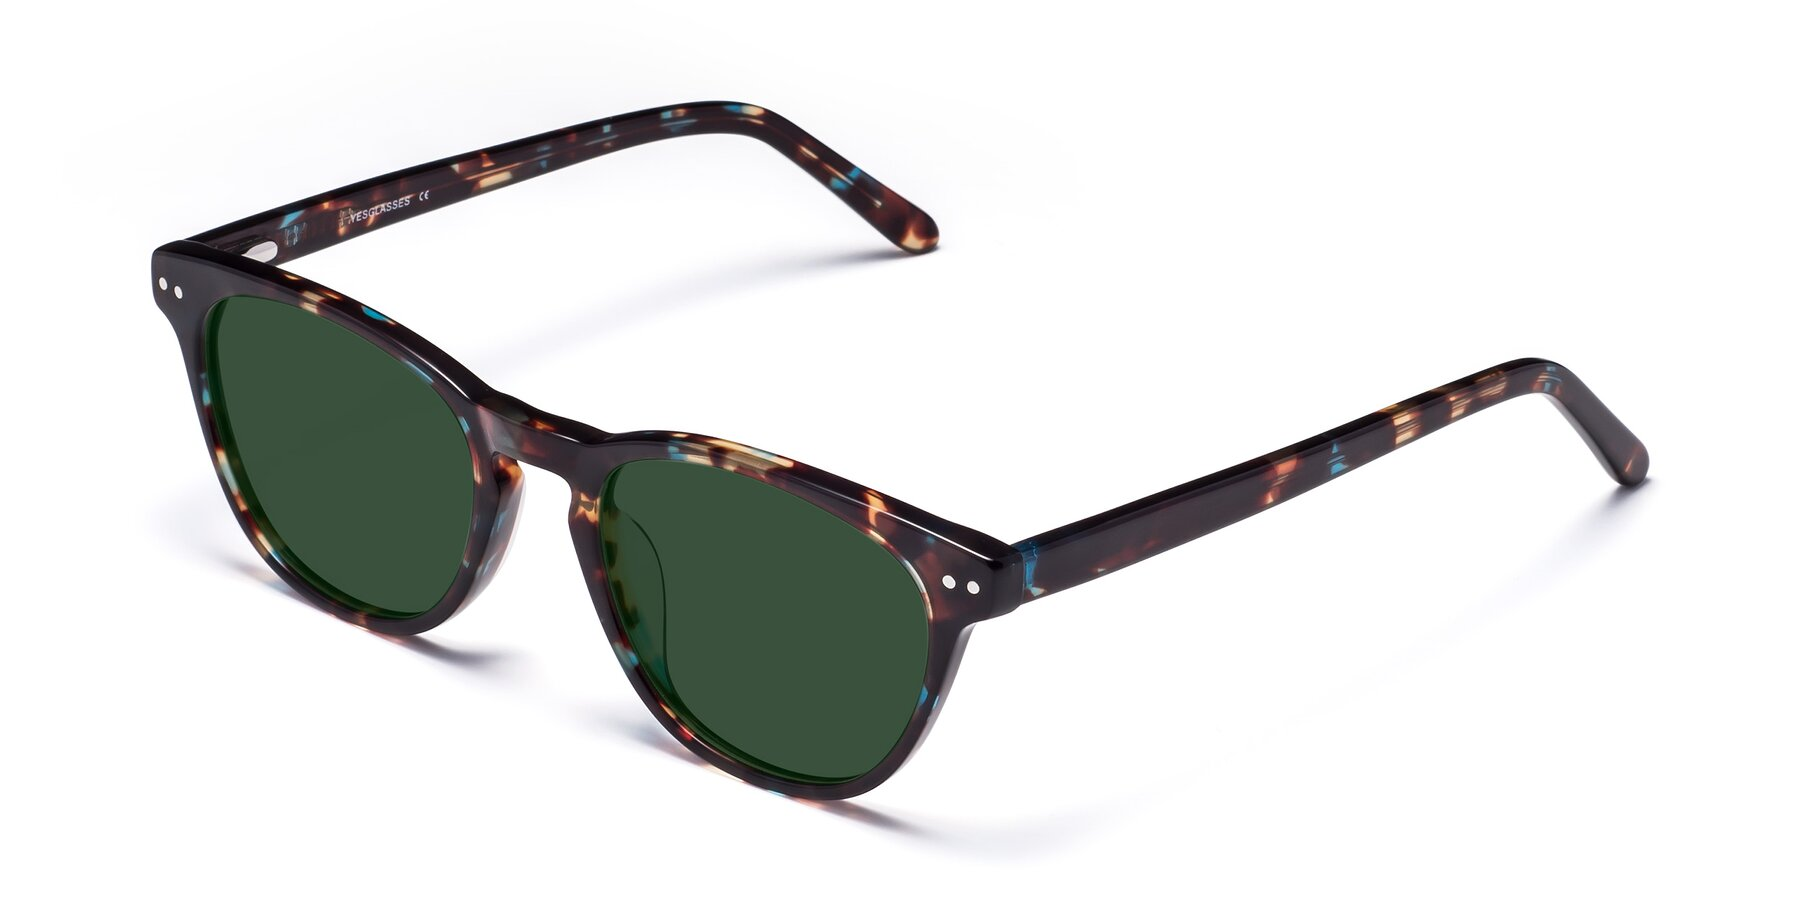 Angle of Blaze in Tortoise-Blue with Green Tinted Lenses